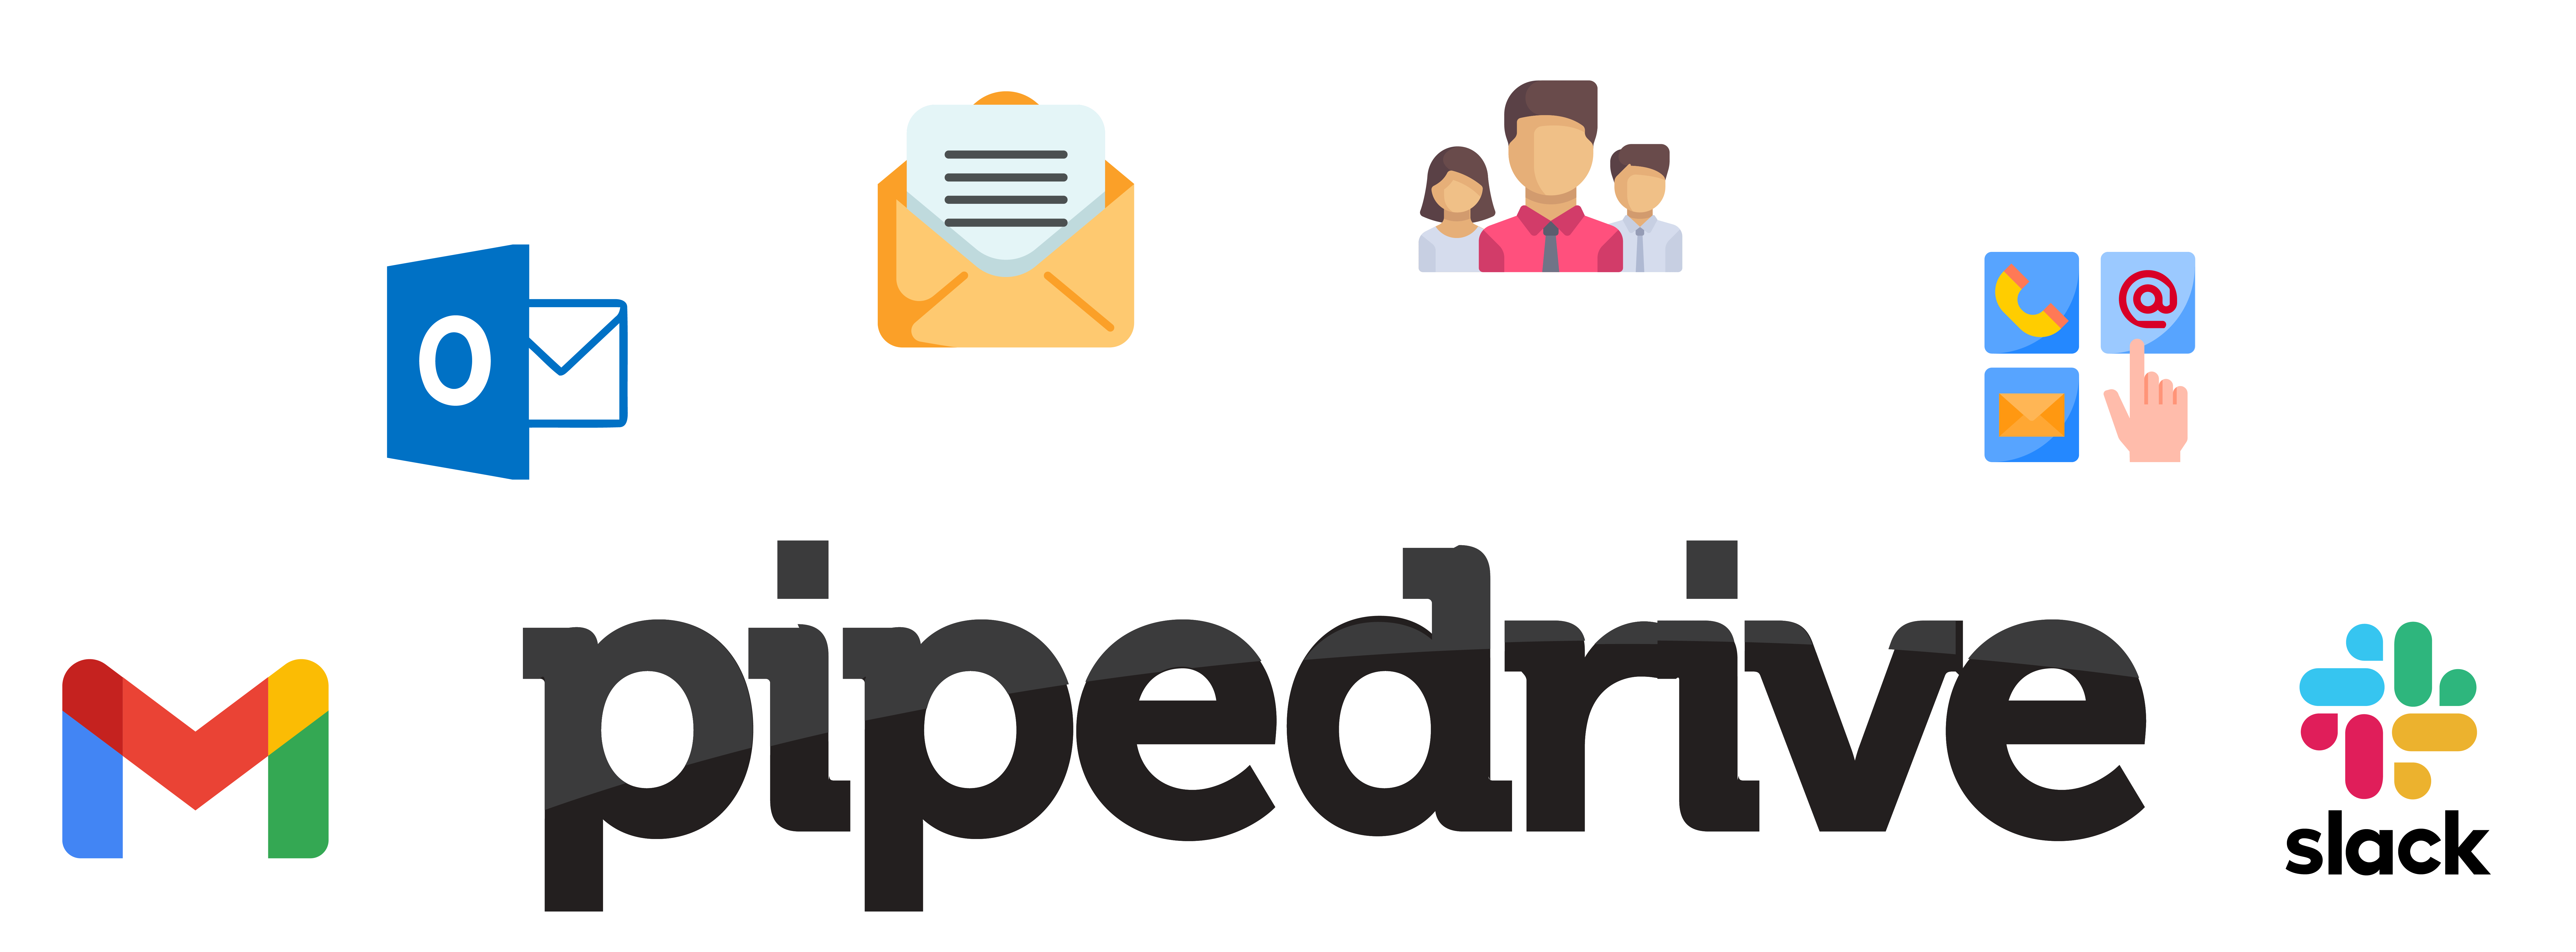 Pipedrive vs Salesforce vs Messenger Bot, CRM Software, Is Pipedrive CRM that good?, How good is Salesforce CRM?, Is Messenger Bot's CRM good?, Is Pipedrive better than Salesforce?, Is Pipedrive a good CRM?, Does Pipedrive work with Salesforce?, Is there a better CRM than Salesforce?